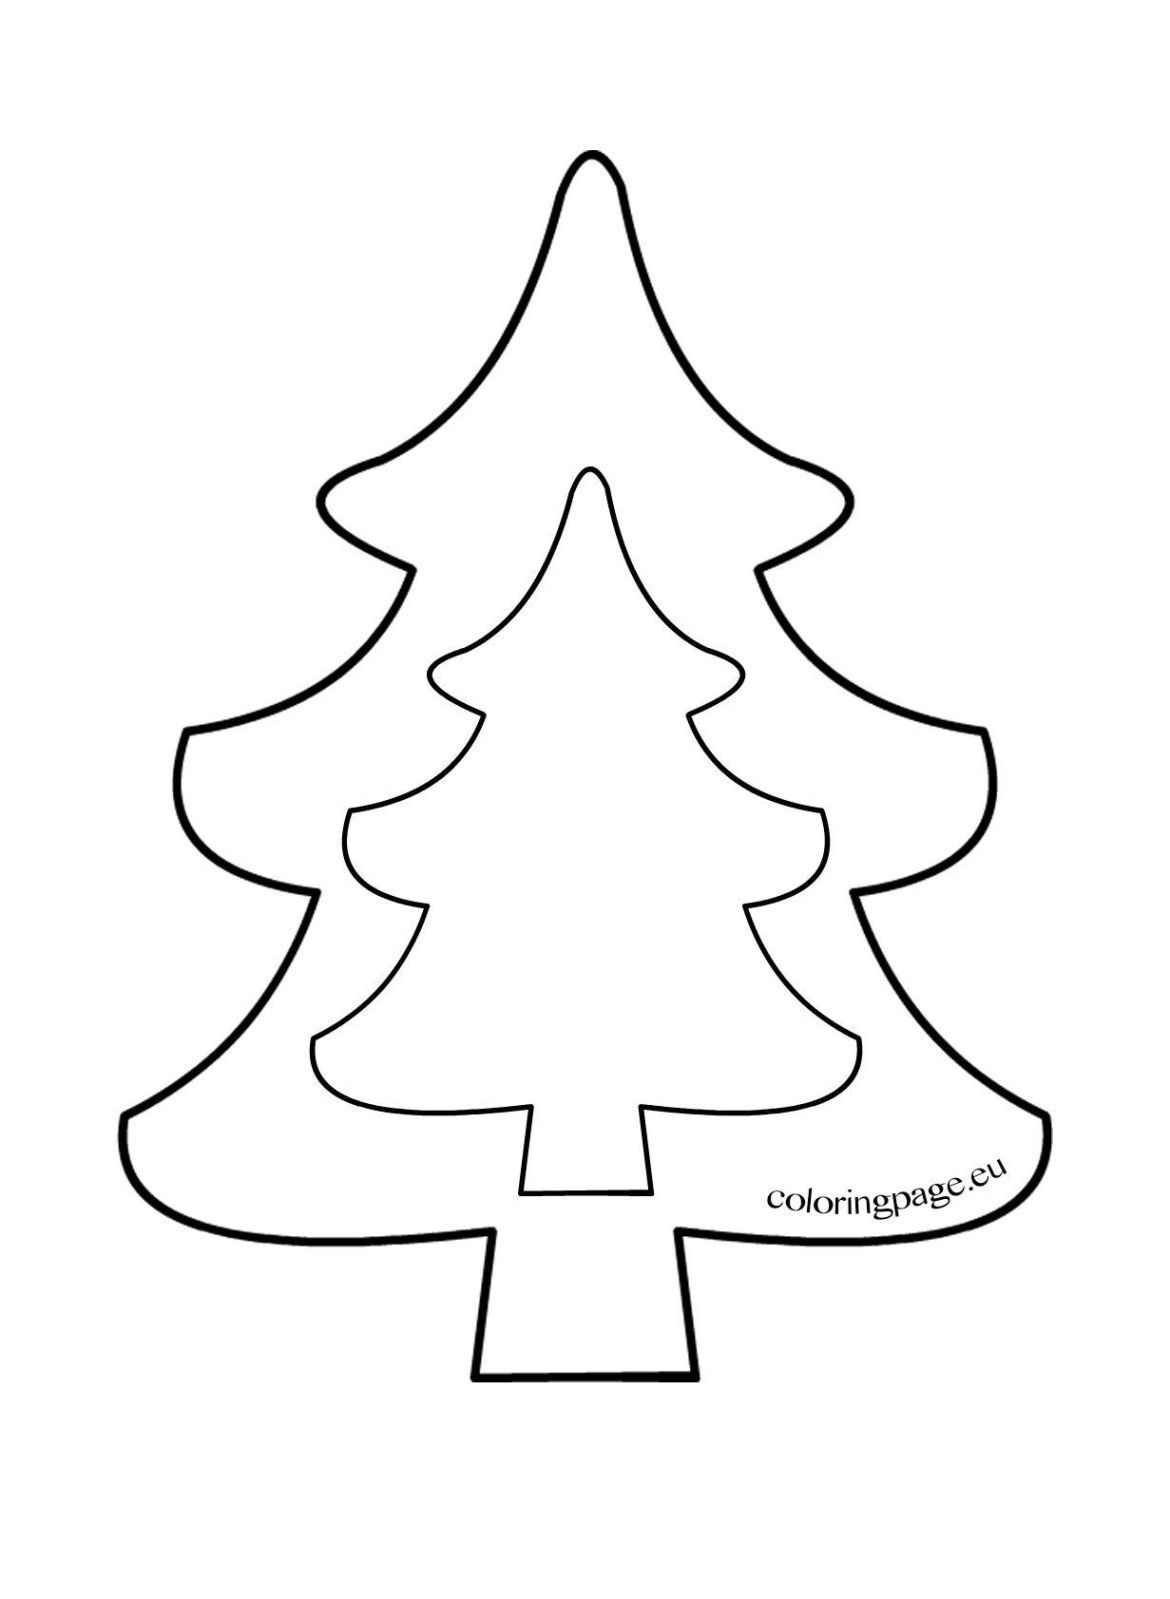 Unique Template For Christmas Tree Crafts Next Color Templates Color Templates Baby Stuff And Crafts Christmas Tree Template Christmas Tree Coloring Page Christmas Tree Drawing